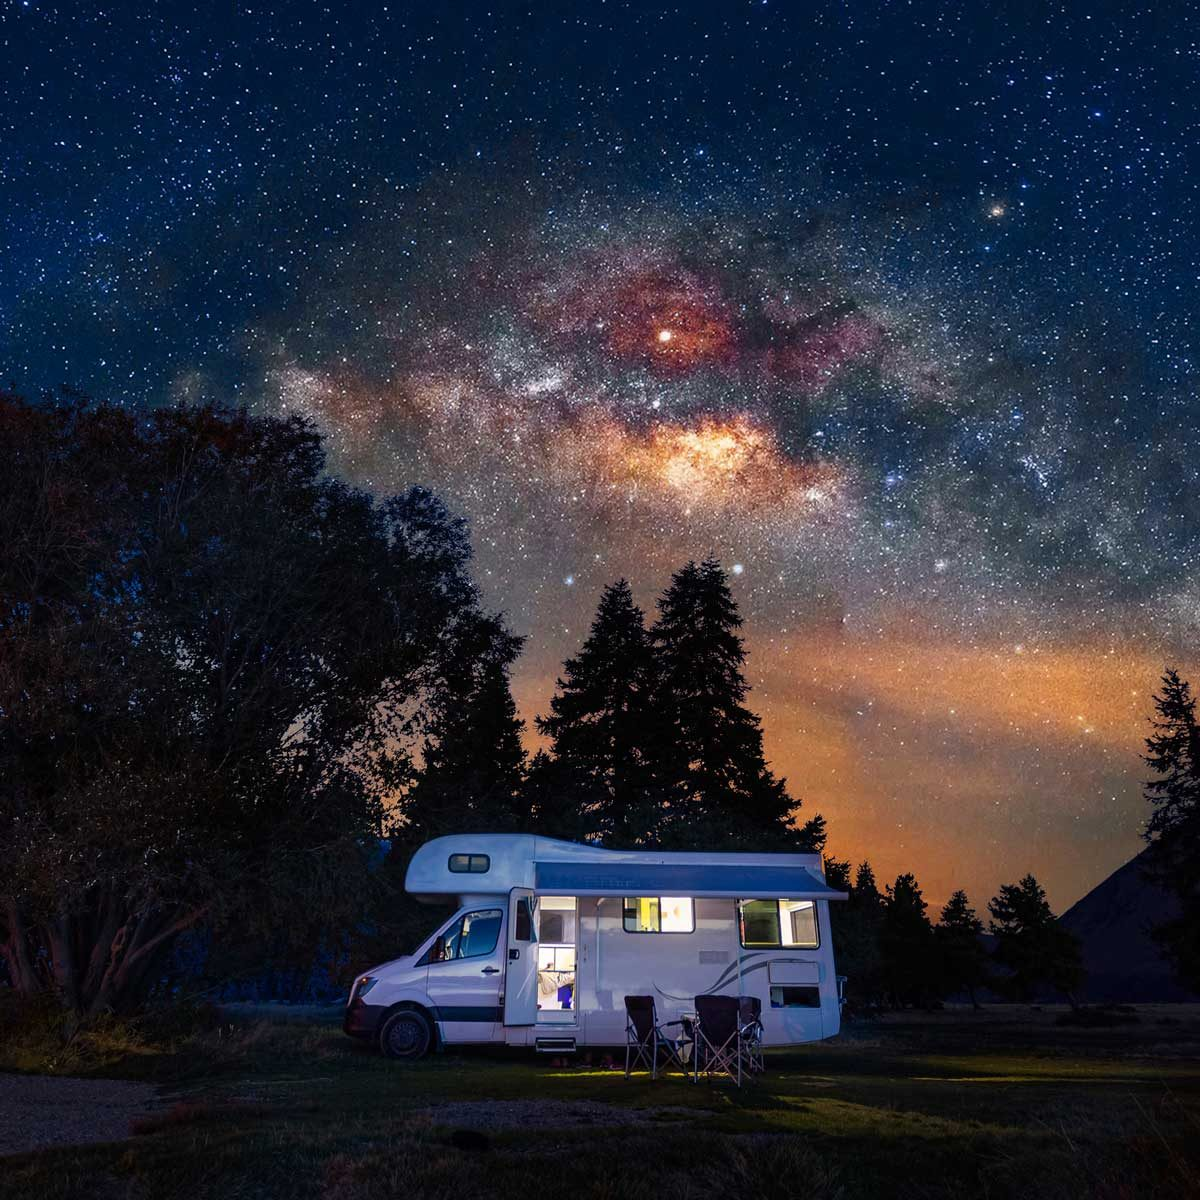 Camper under the starry sky